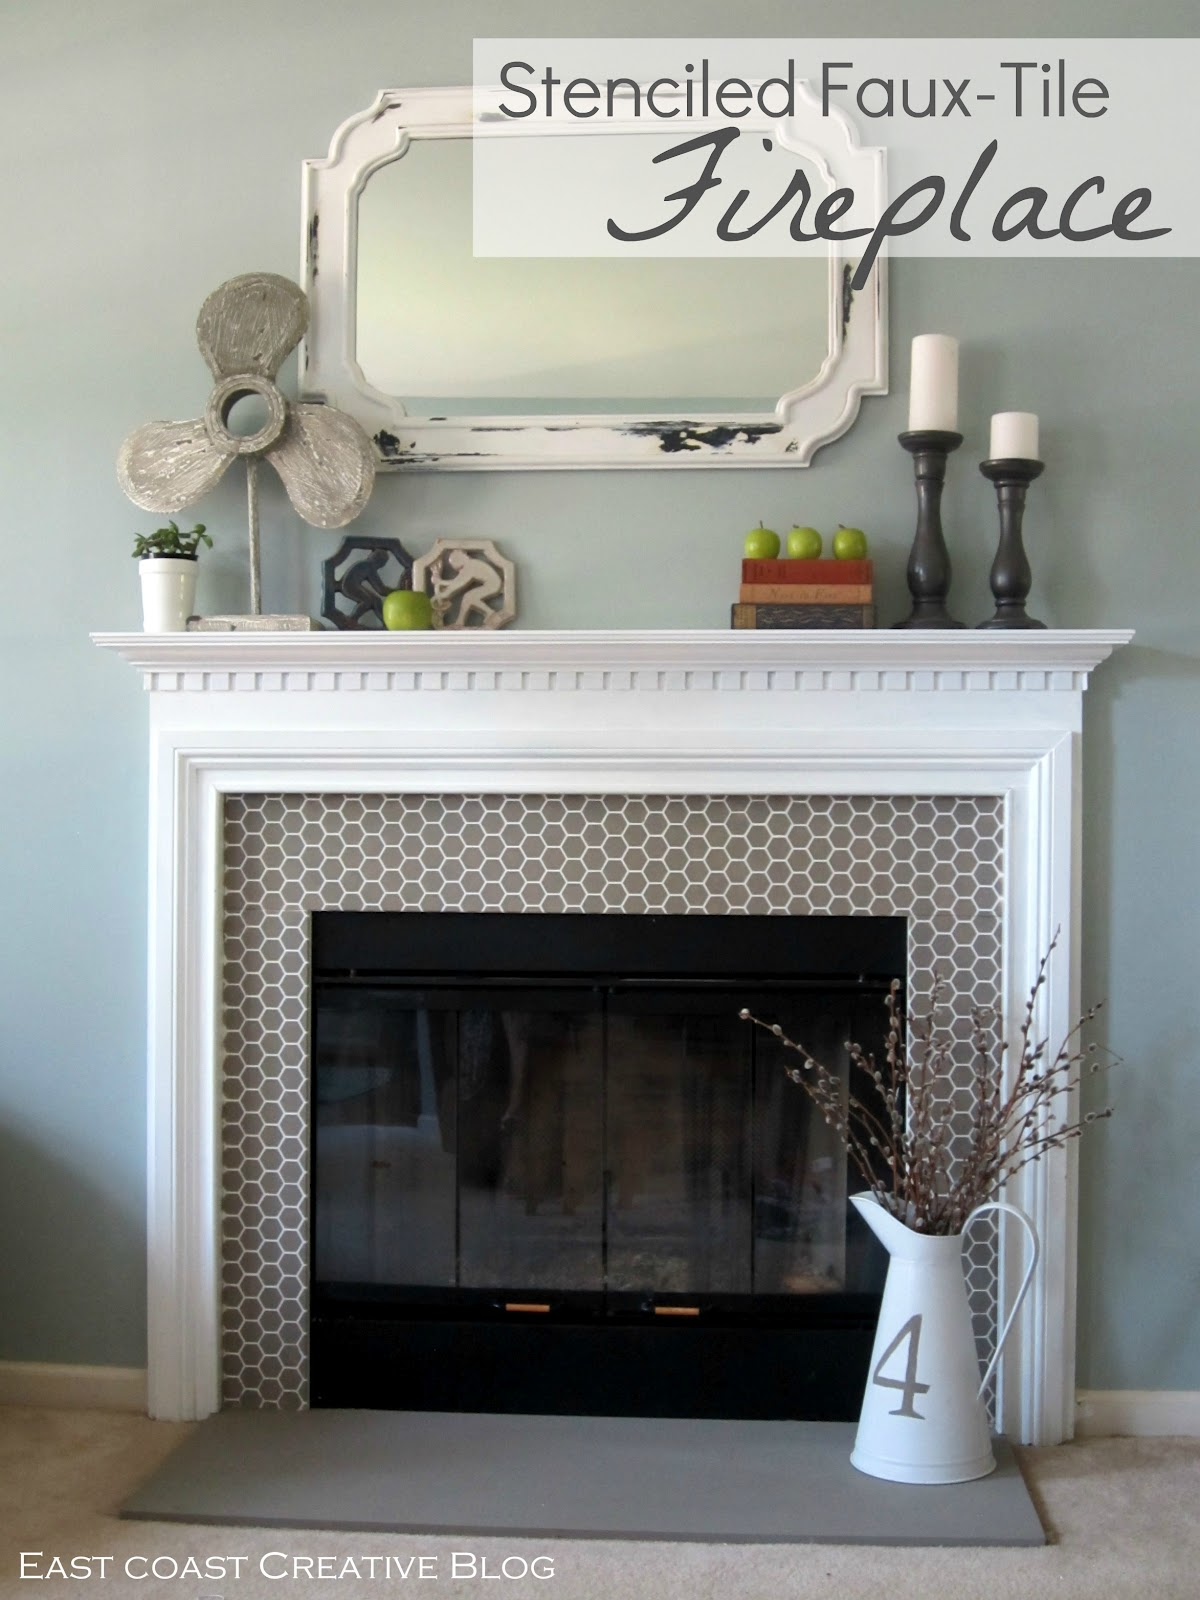 Stenciled Faux-Tile Fireplace {Tutorial}